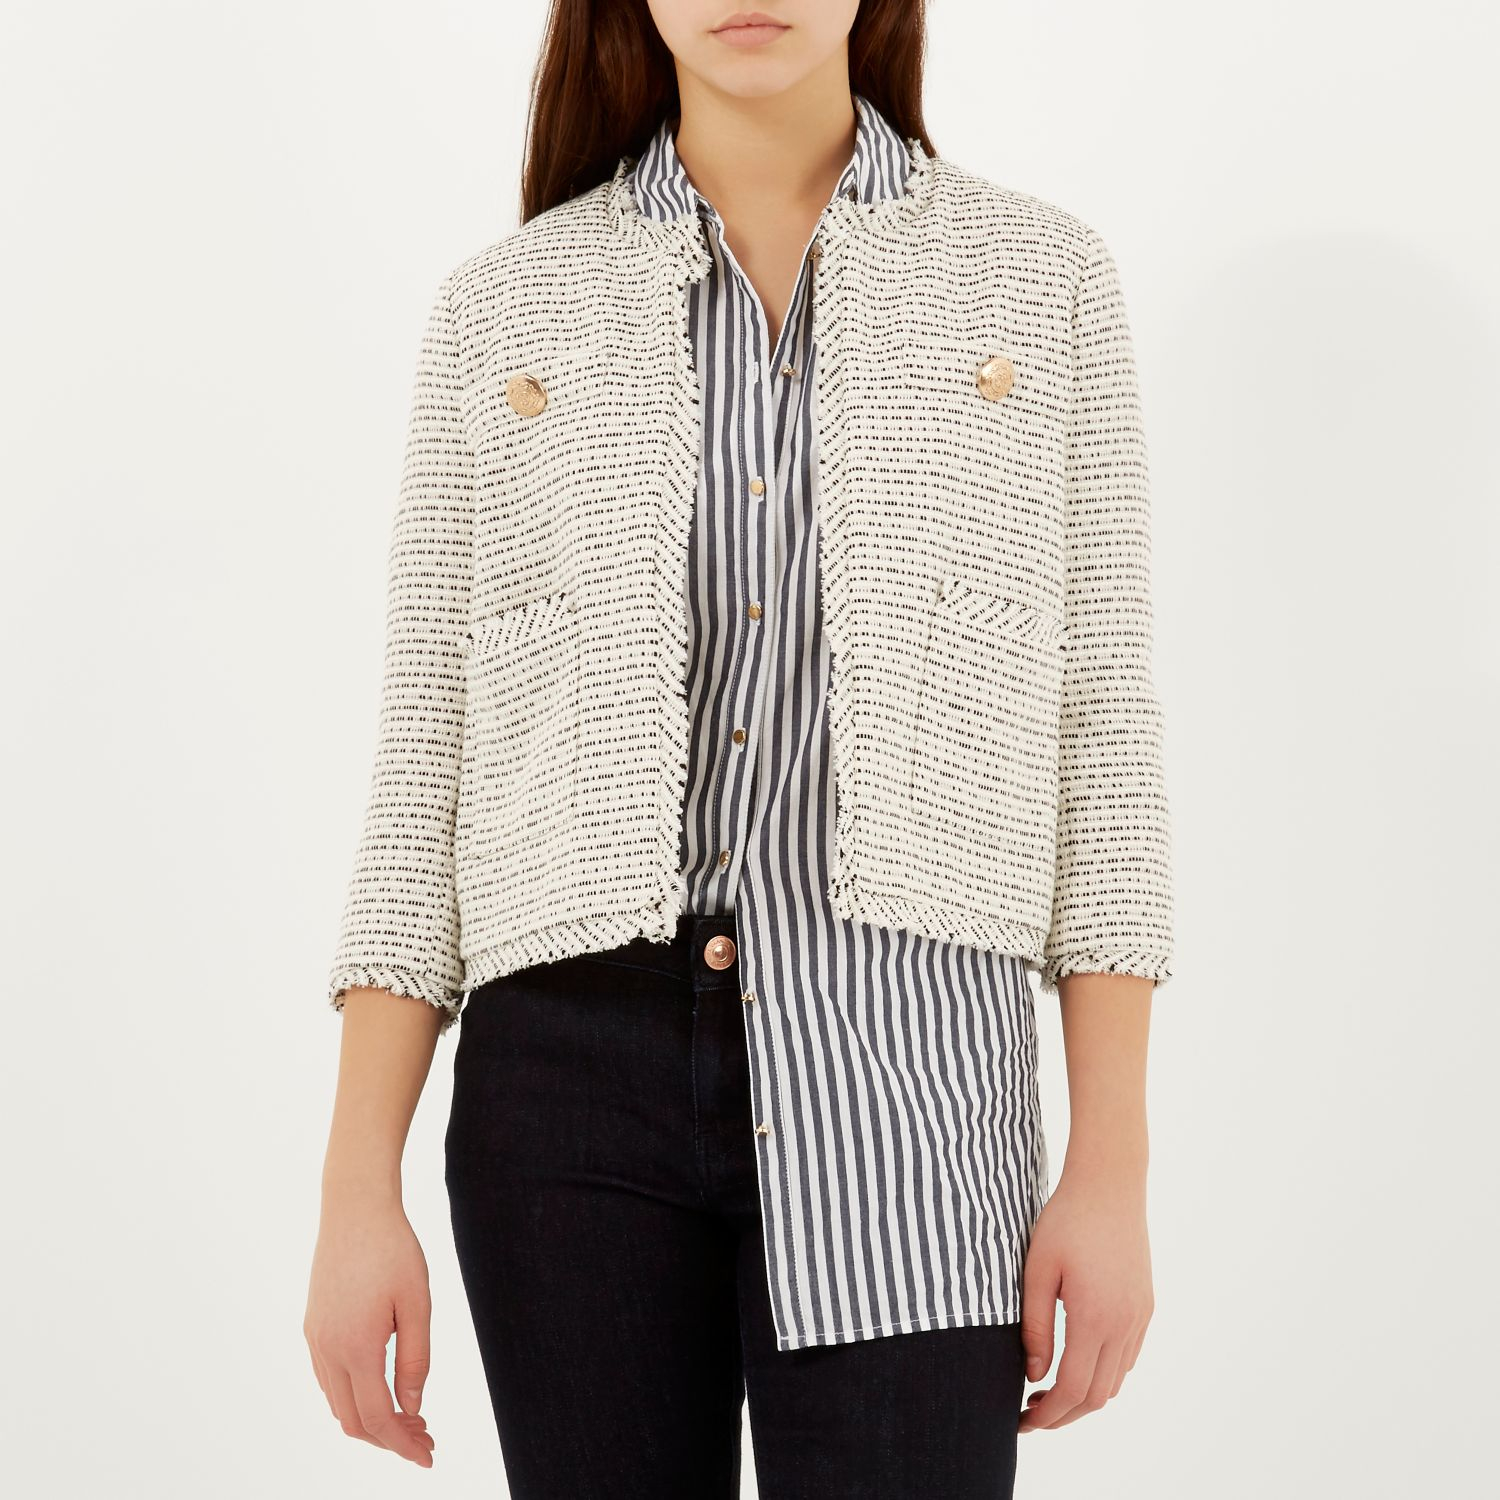 River island Cream Flecked Boxy Tweed Jacket in Natural | Lyst